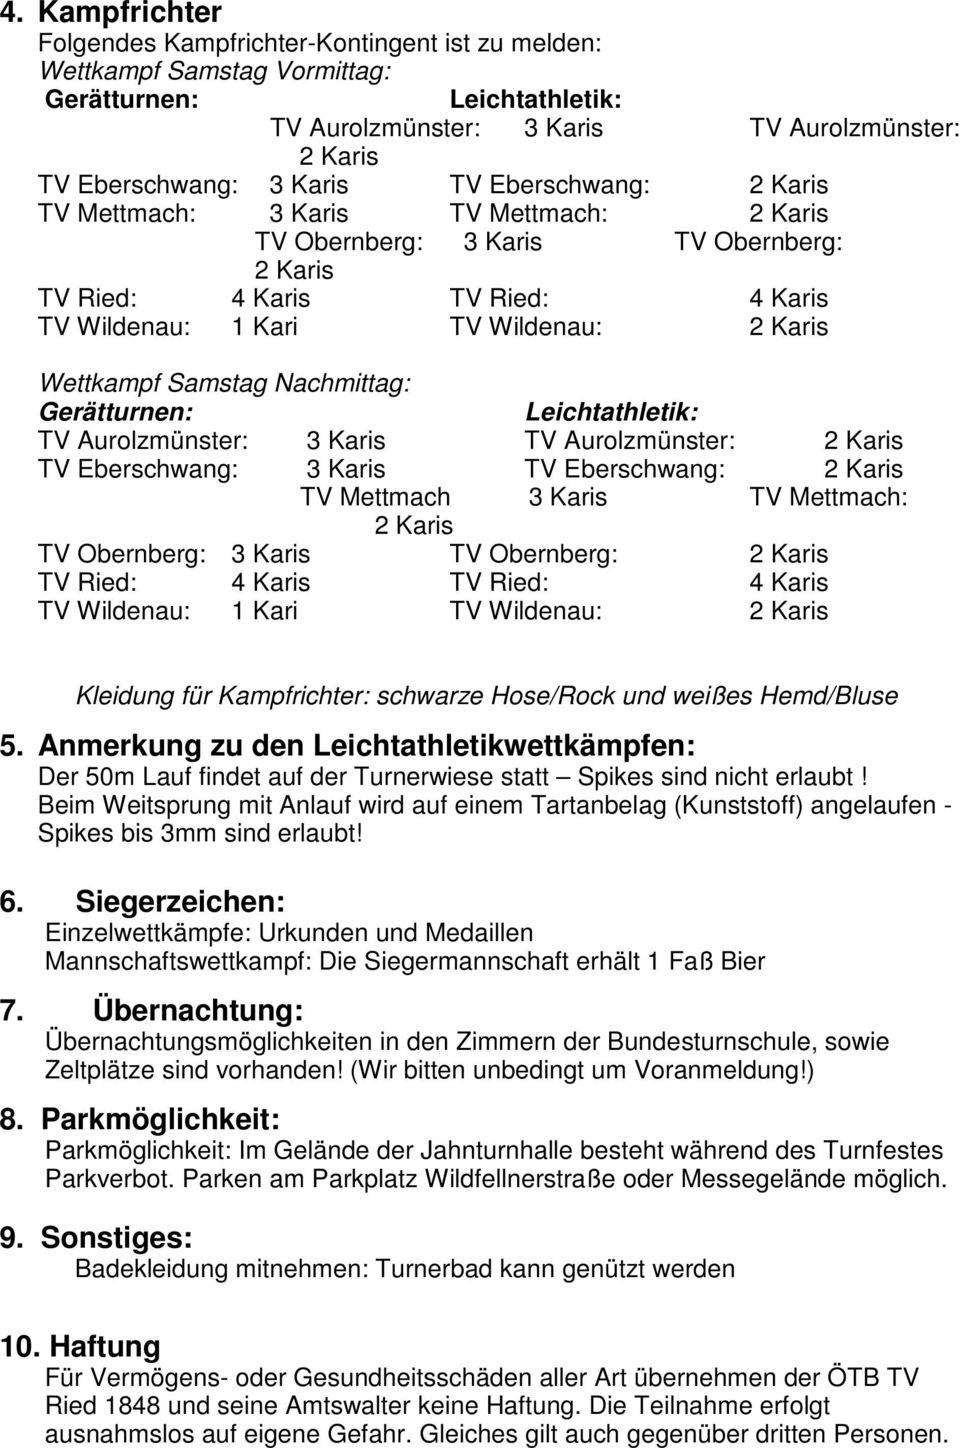 Samstag Nachmittag: Gerätturnen: Leichtathletik: TV Aurolzmünster: 3 Karis TV Aurolzmünster: 2 Karis TV Eberschwang: 3 Karis TV Eberschwang: 2 Karis TV Mettmach 3 Karis TV Mettmach: 2 Karis TV